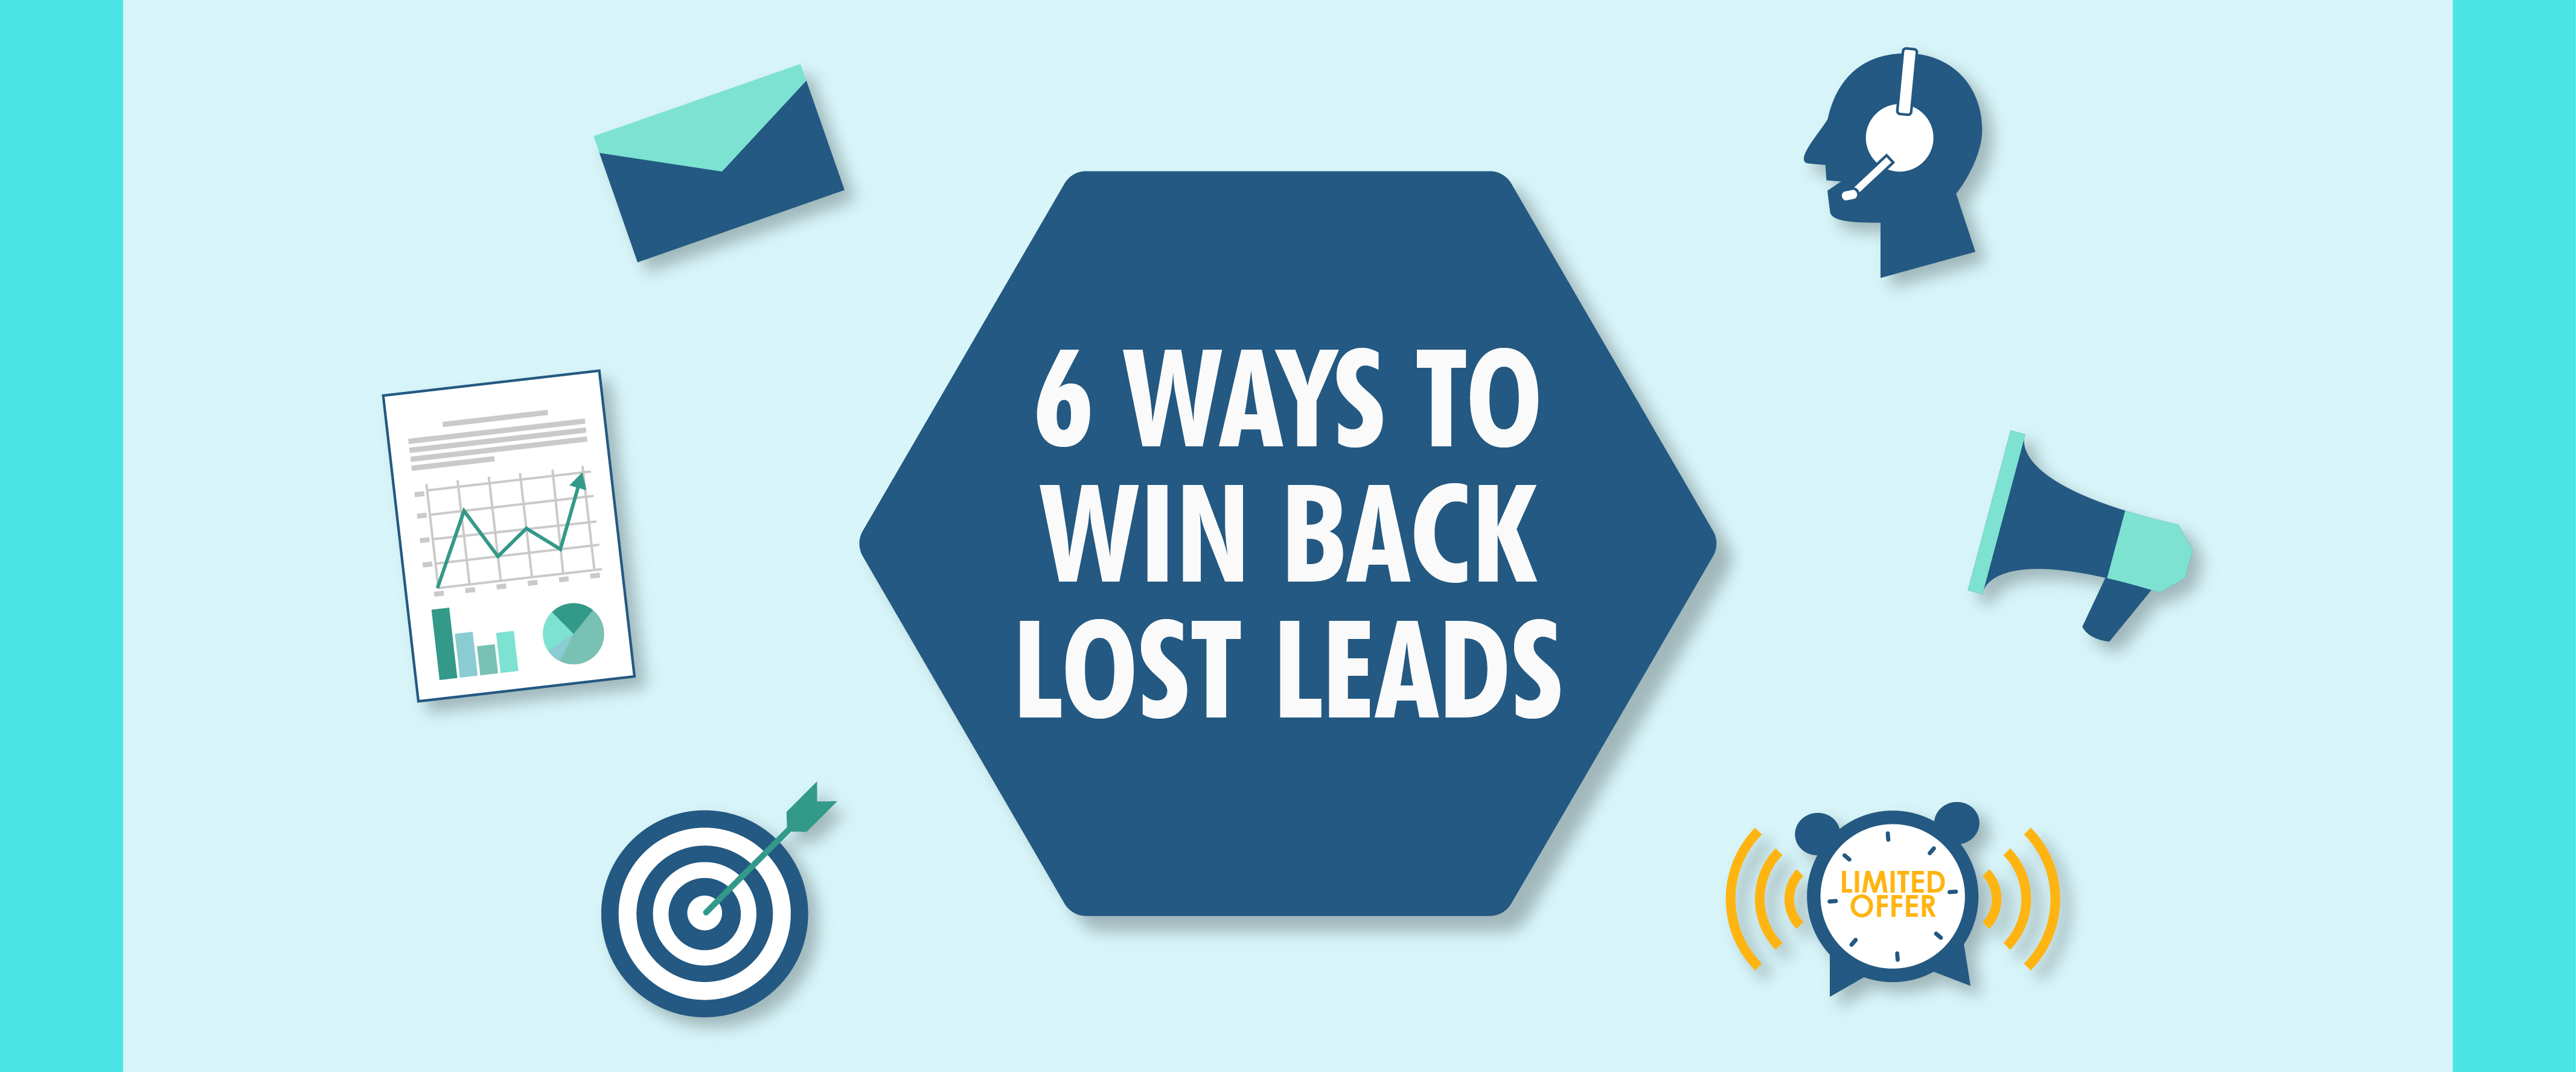 6 Ways to Win Back Lost Leads